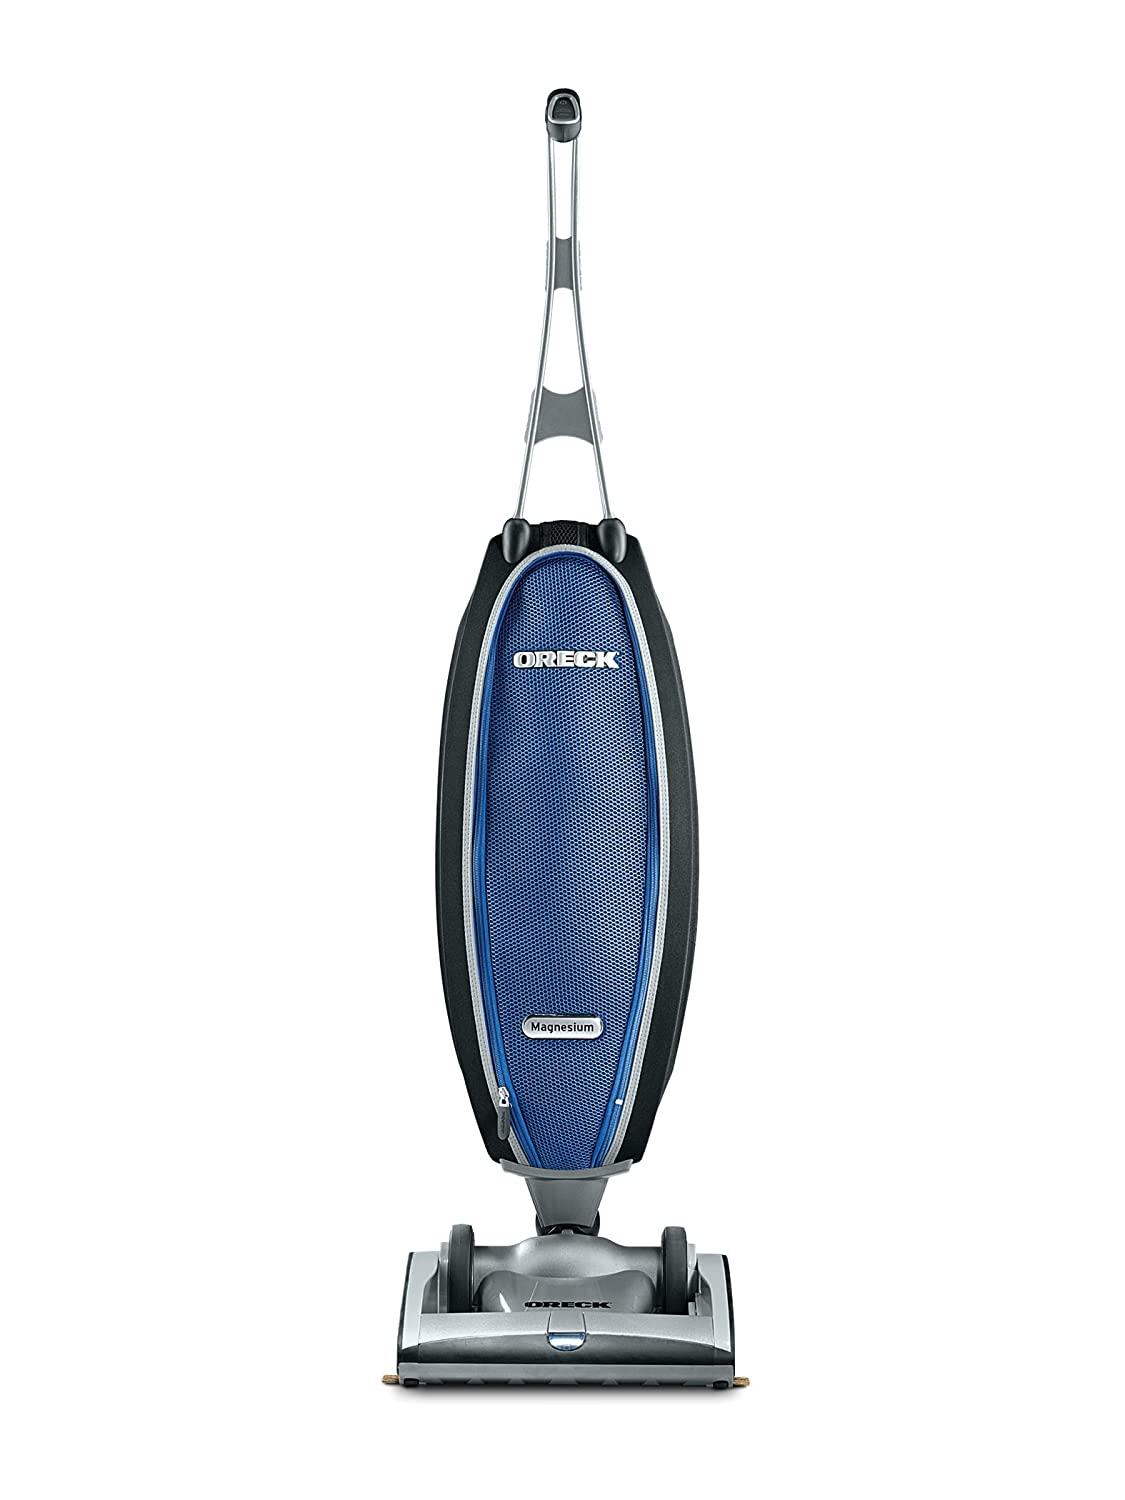 Oreck Magnesium RS Swivel-Steering Bagged Upright Vacuum